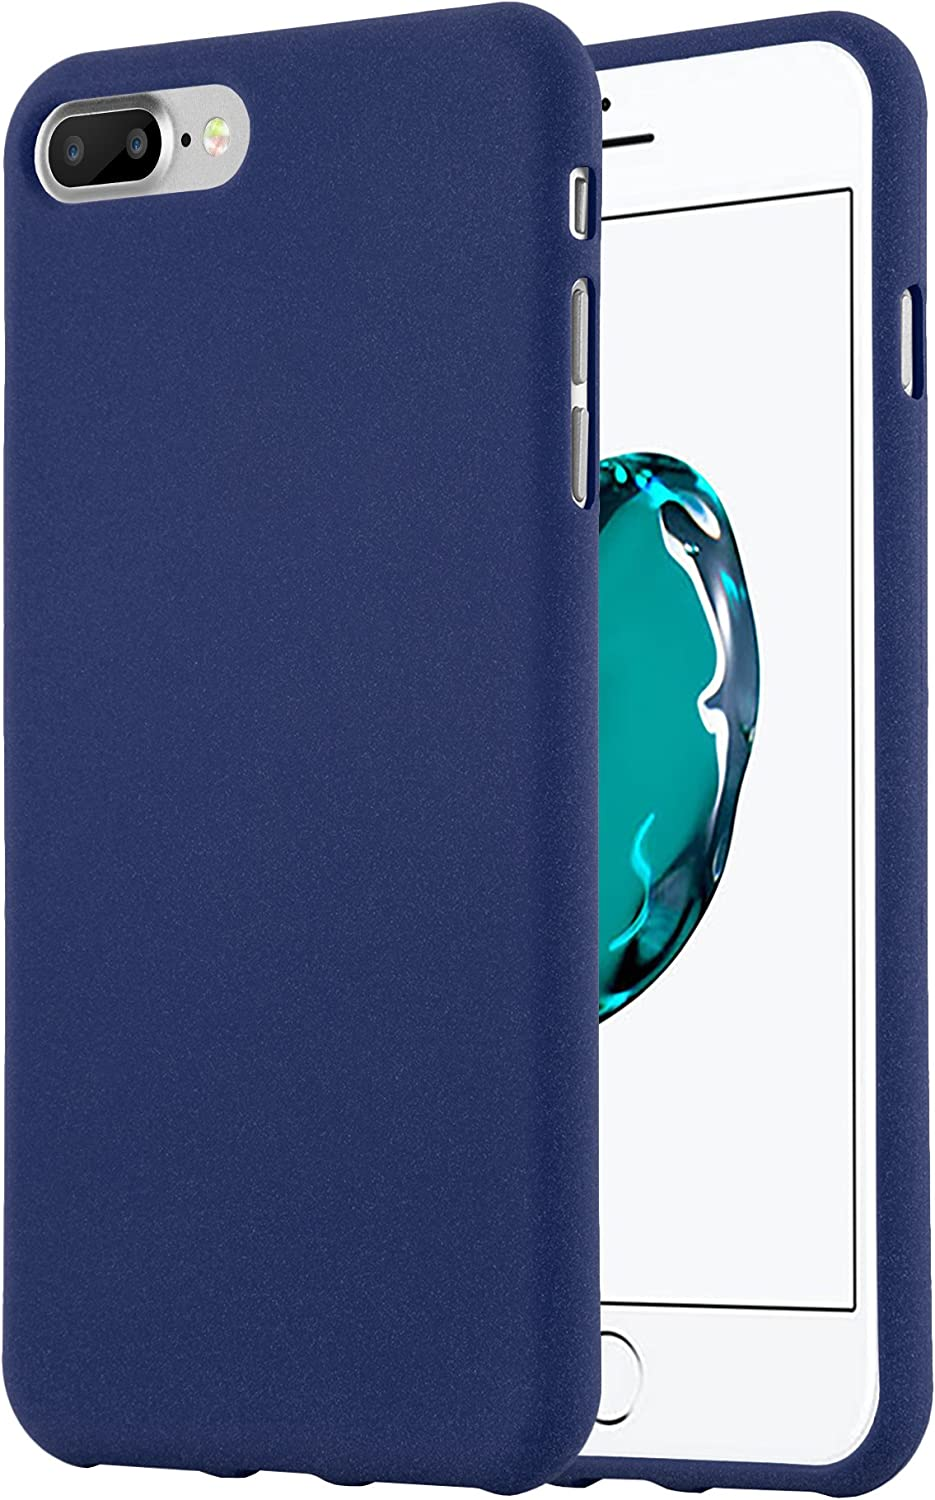 Cadorabo Case Compatible with Apple iPhone 8 Plus / 7 Plus / 7S Plus in Frost Dark Blue - Shockproof and Scratch Resistant TPU Silicone Cover - Ultra Slim Protective Gel Shell Bumper Back Skin